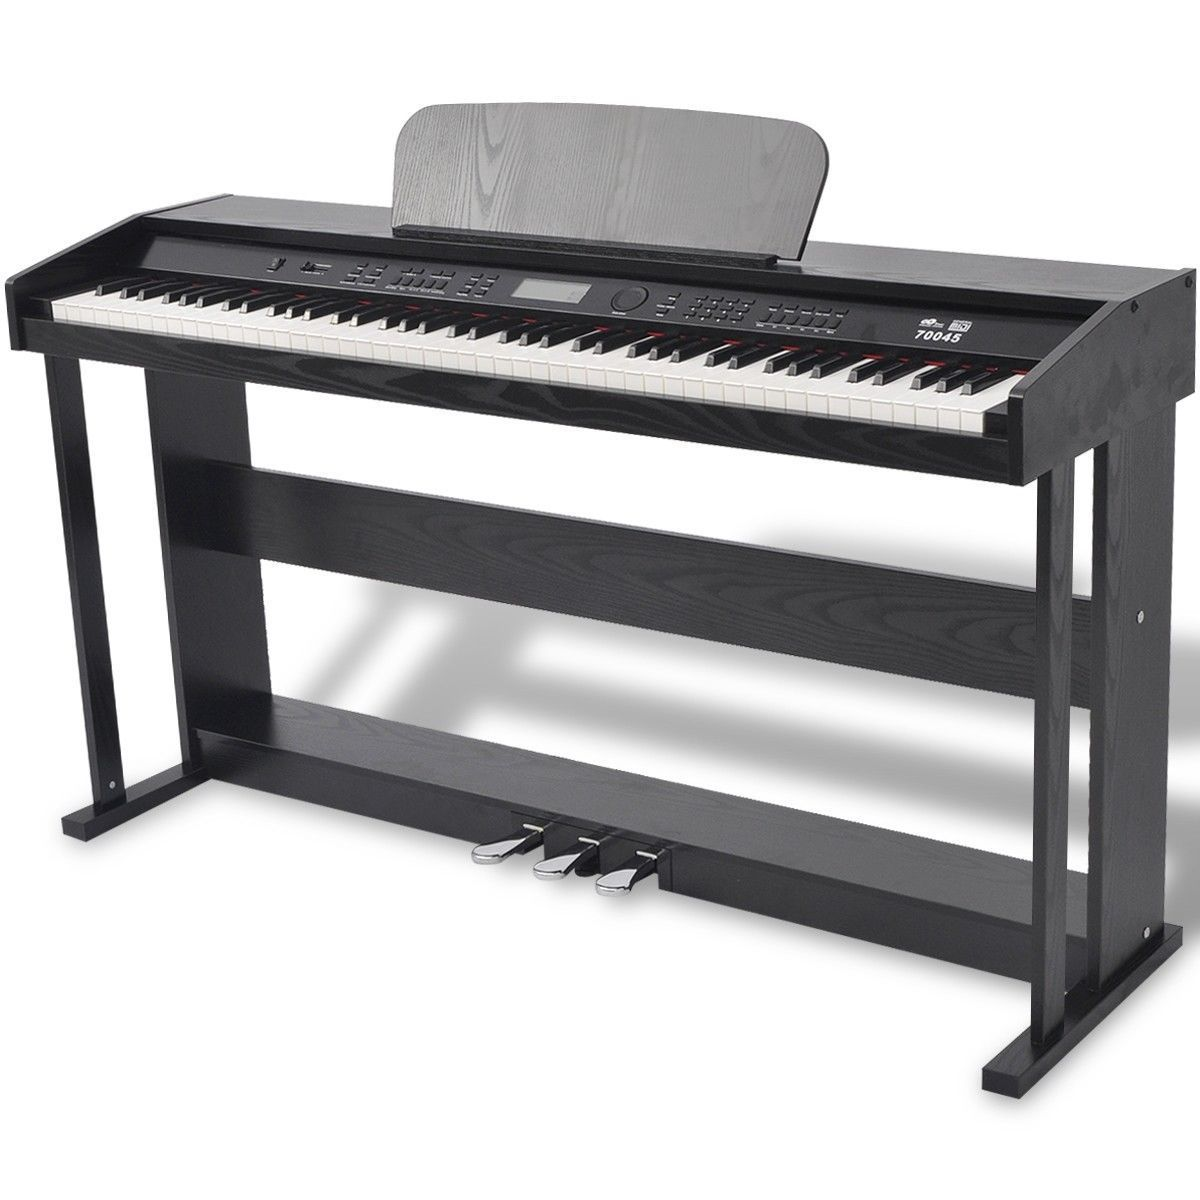 Sensorleuchte Innen Awesome 88 Key Transportable Digital Piano Keyboard With Stand